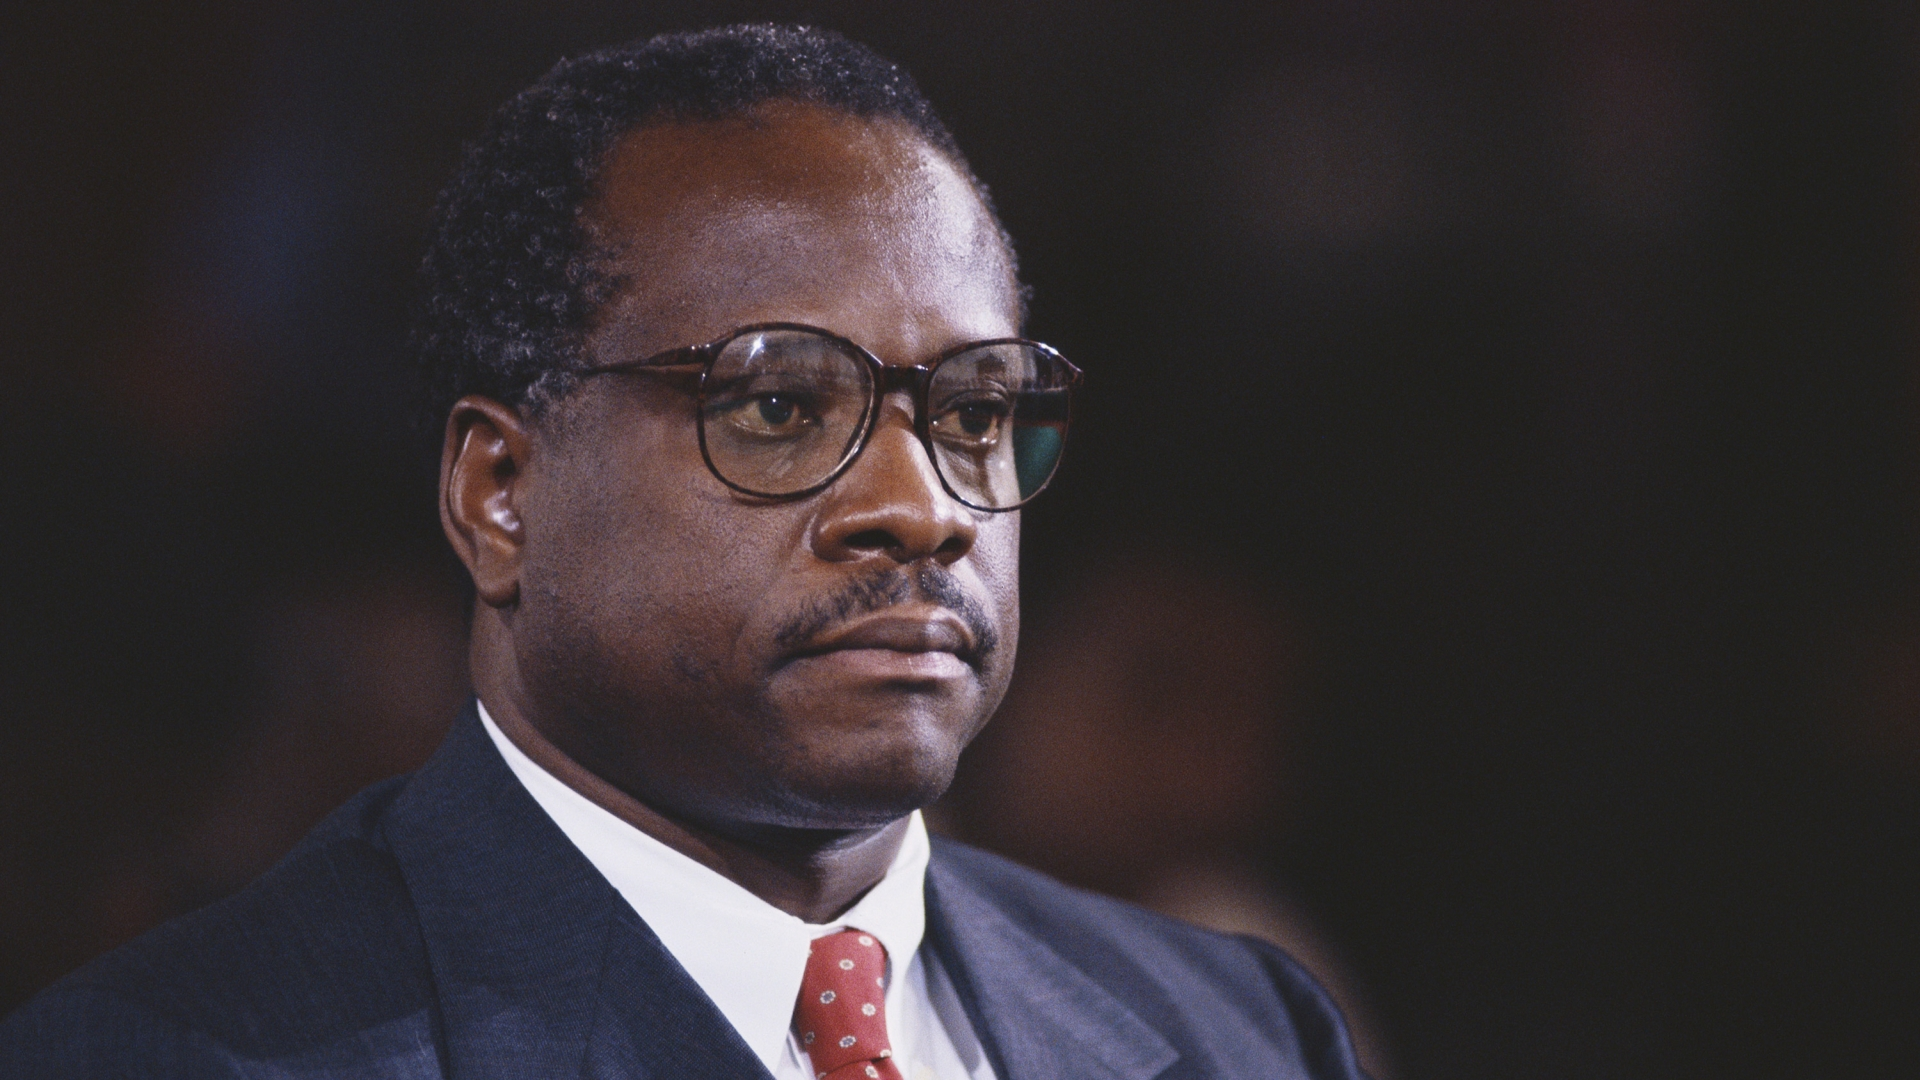 Clarence Thomas awaits proceedings during his hearing regarding the alleged sexual harassment of Anita Hill. (Credit: Wally McNamee/Corbis/Getty Images)